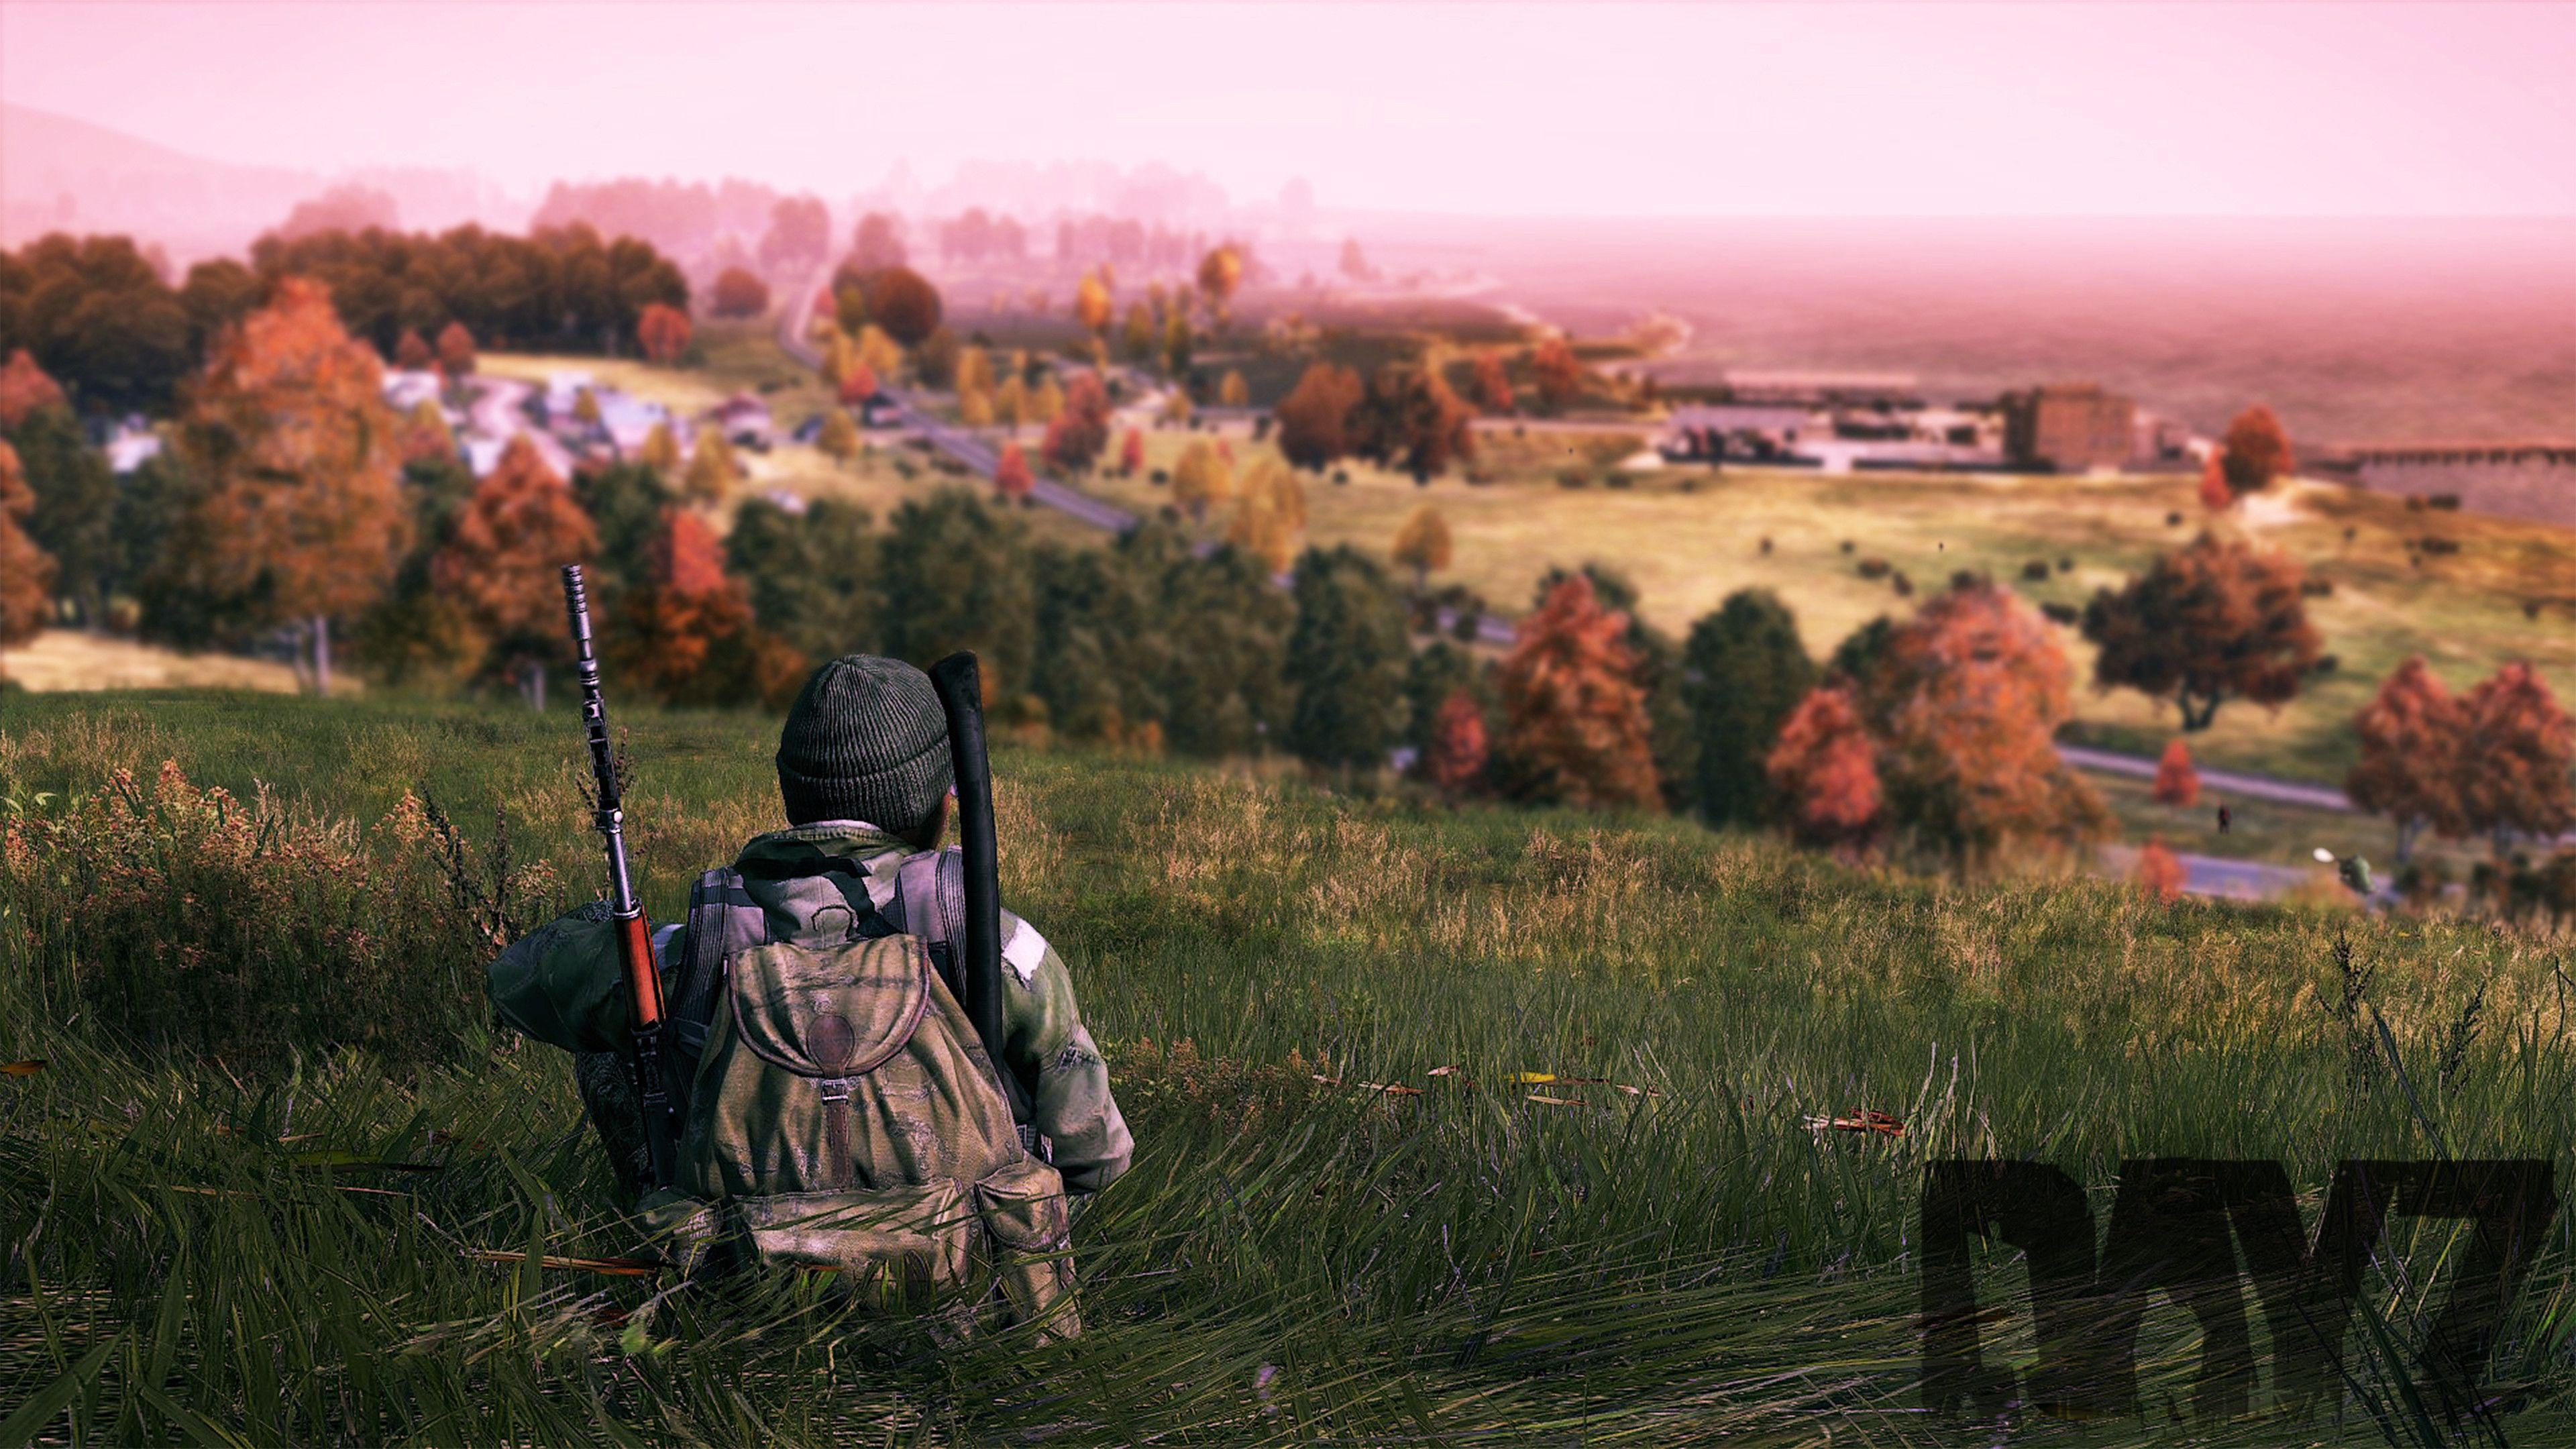 Pubg Hd Wallpapers Cave: DayZ Wallpapers